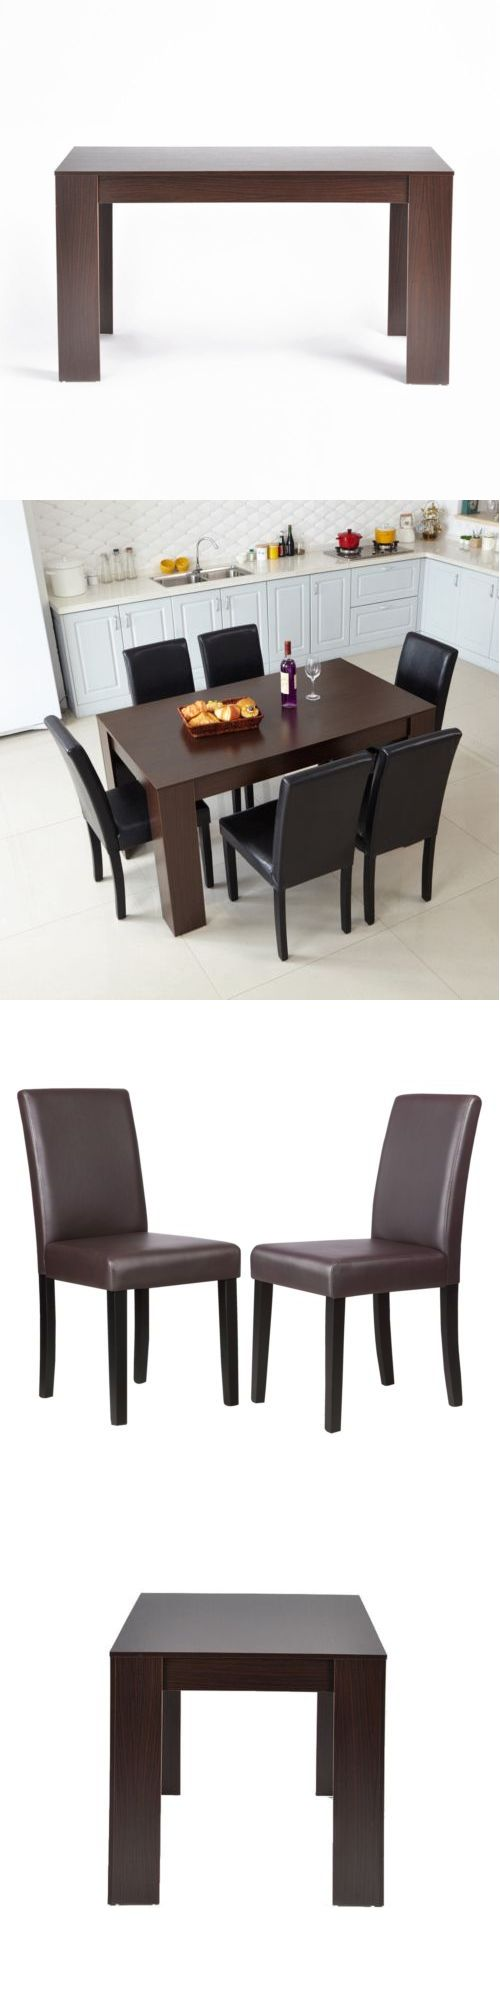 Dining Sets 107578: 5 Piece Kitchen Set Wooden Dining Table Walnut Color And 4 Brown Leather Chairs -> BUY IT NOW ONLY: $201.99 on eBay!